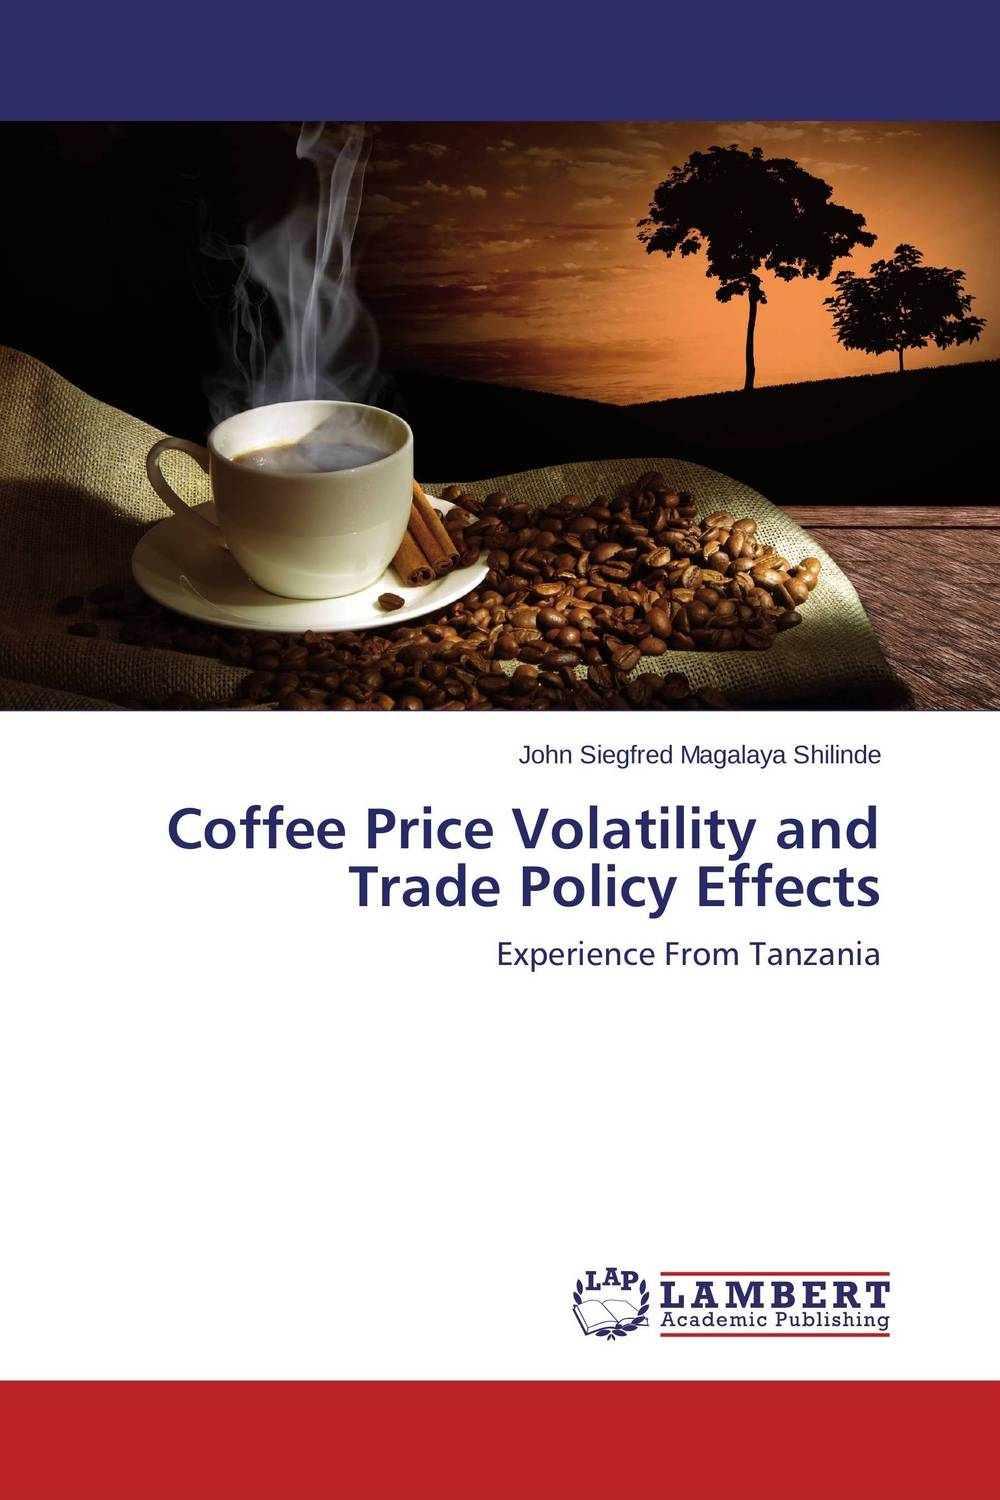 Coffee Price Volatility and Trade Policy Effects nkobe kenyoru dividend policy and share price volatility